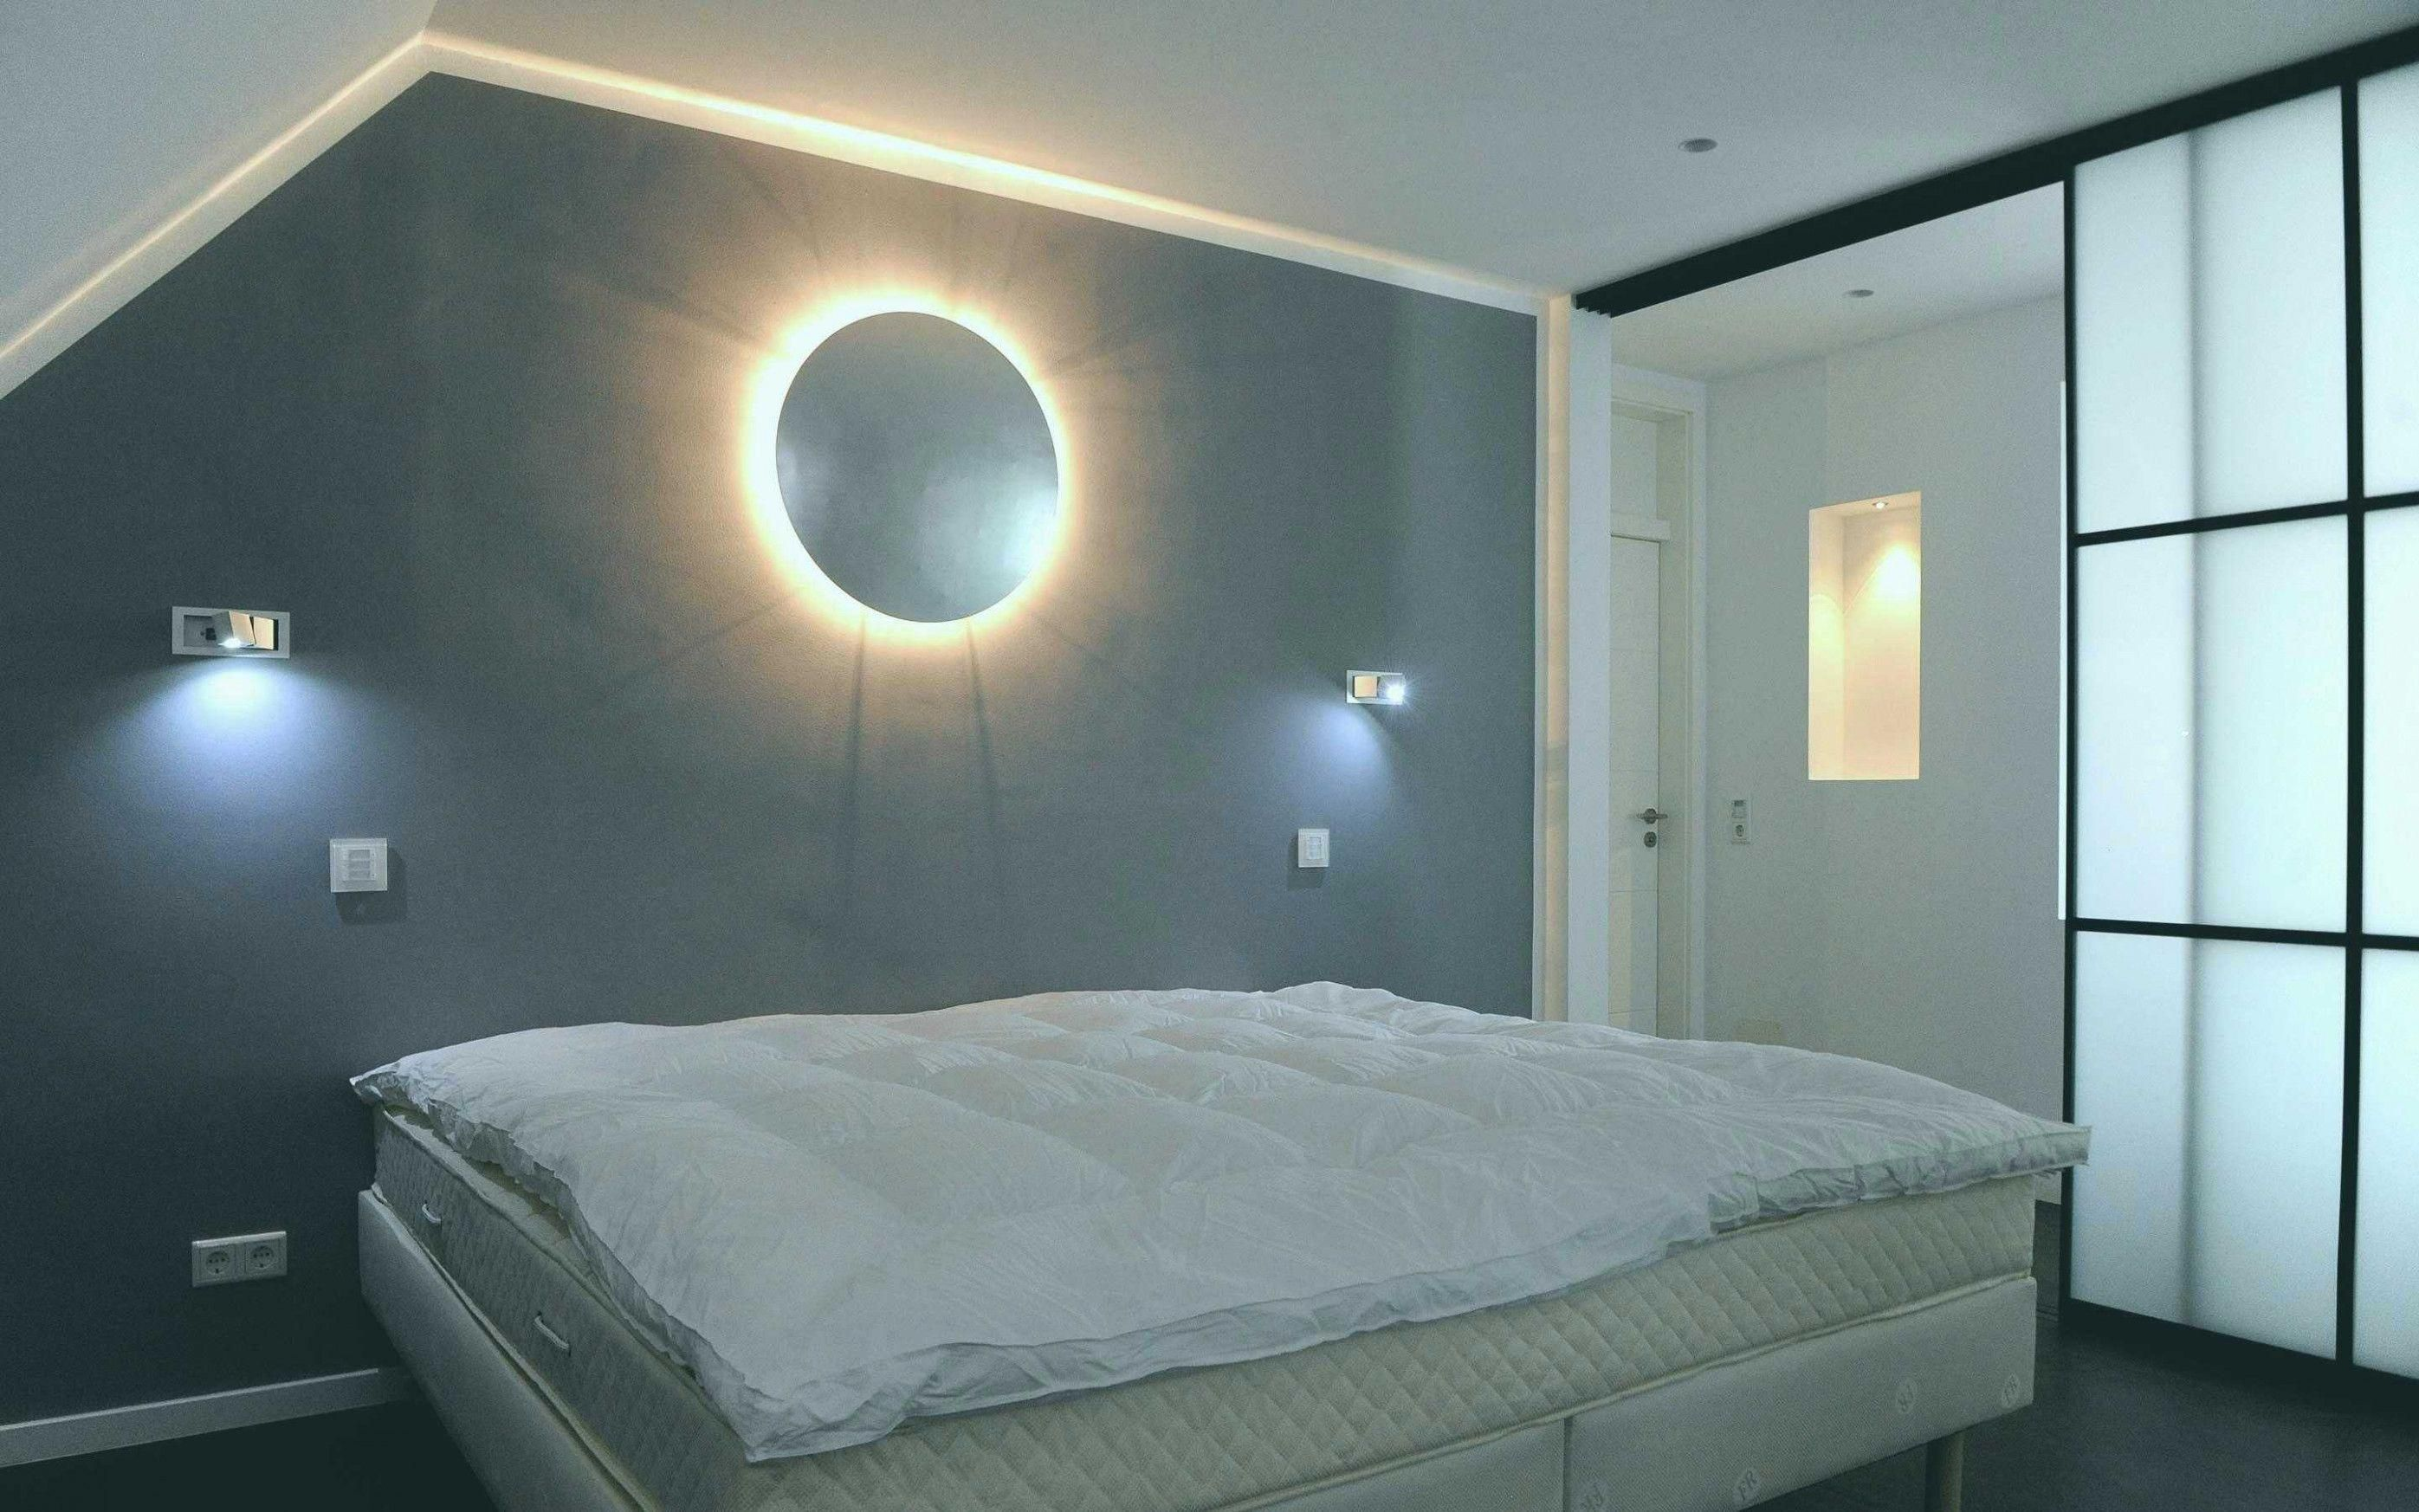 Nice Schlafzimmer Lampe Ideen that you must know, Youre in